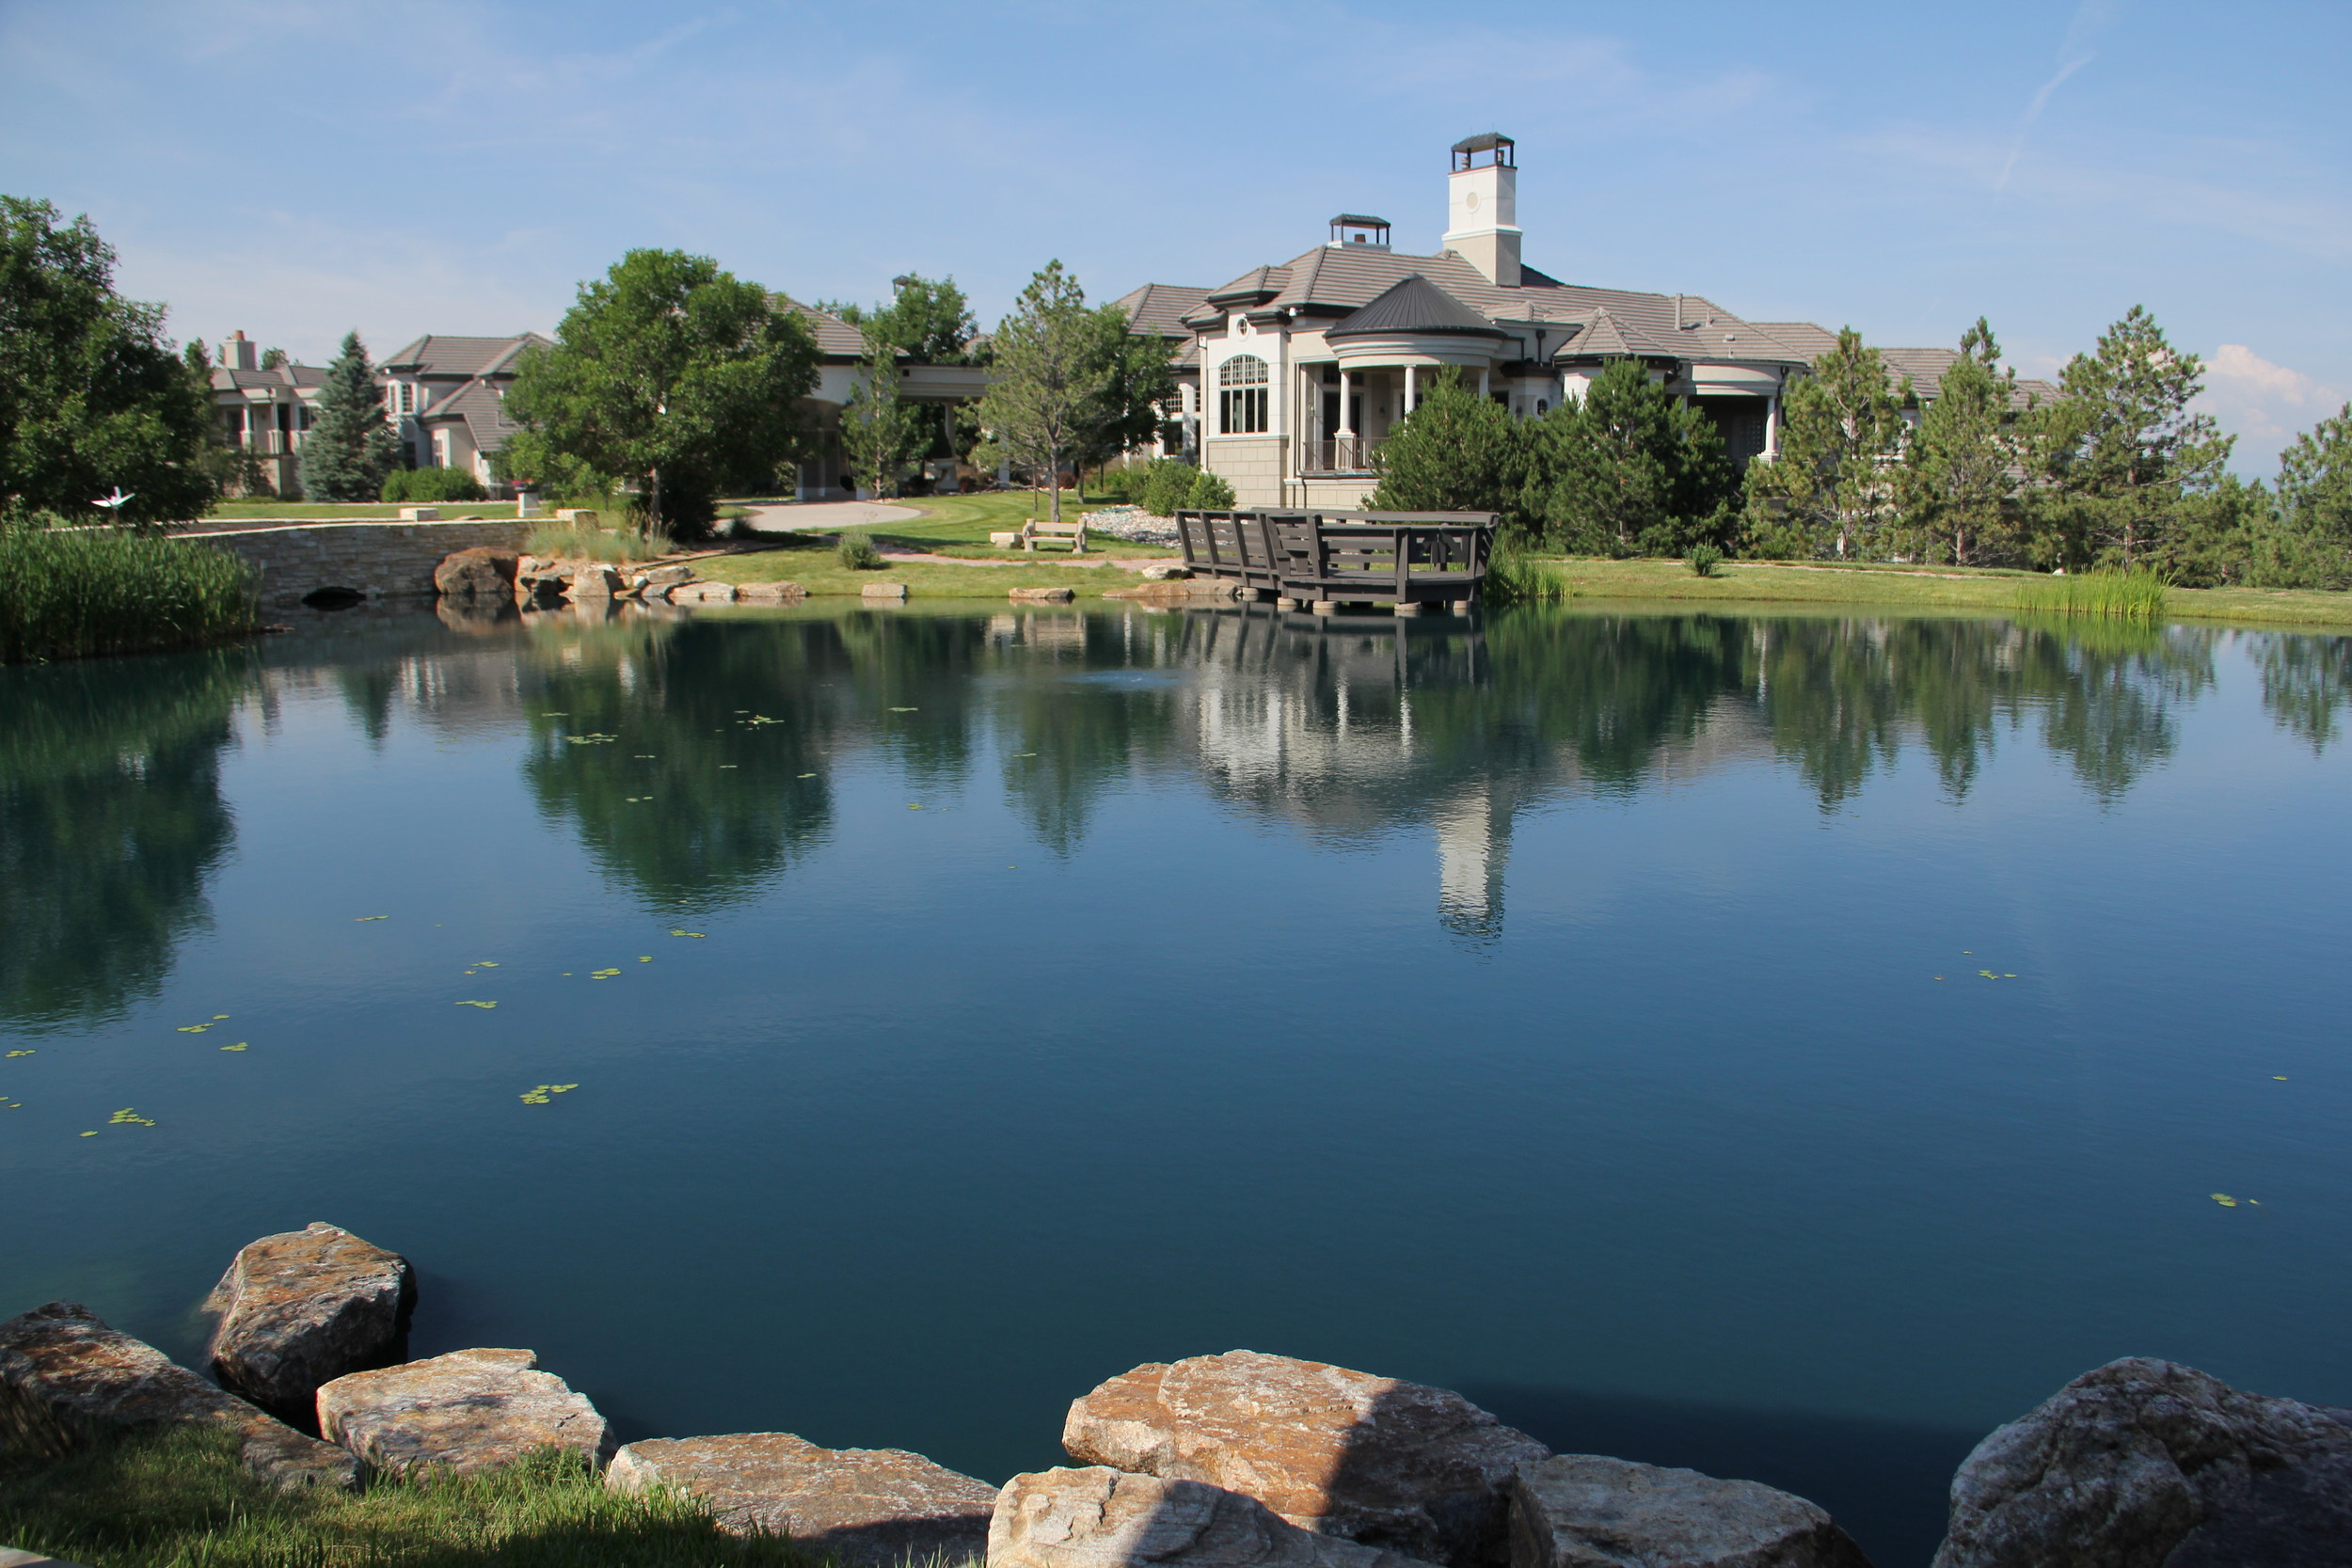 Serenity Ridge, a 47,100 square-foot estate owned by a man whose grandfather created Dollar General, is on the market for $18.37 million. If it does not sell by Sept. 27, it will be put up at a no-reserve auction.